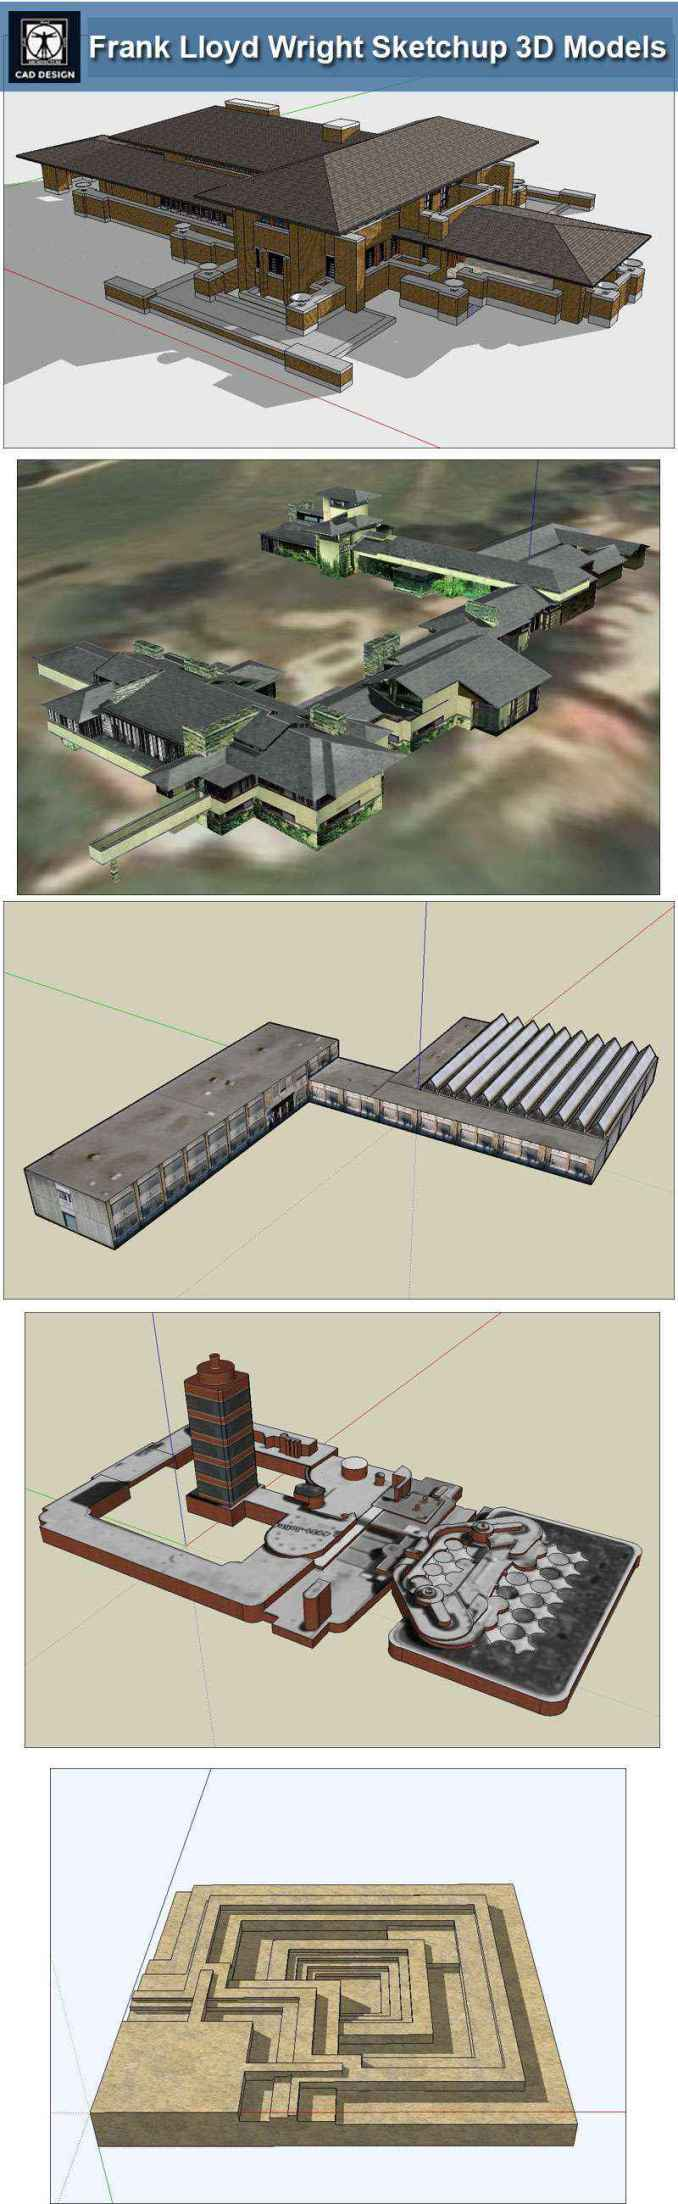 16 Projects Of Frank Lloyd Wright Architecture Sketchup 3D Models